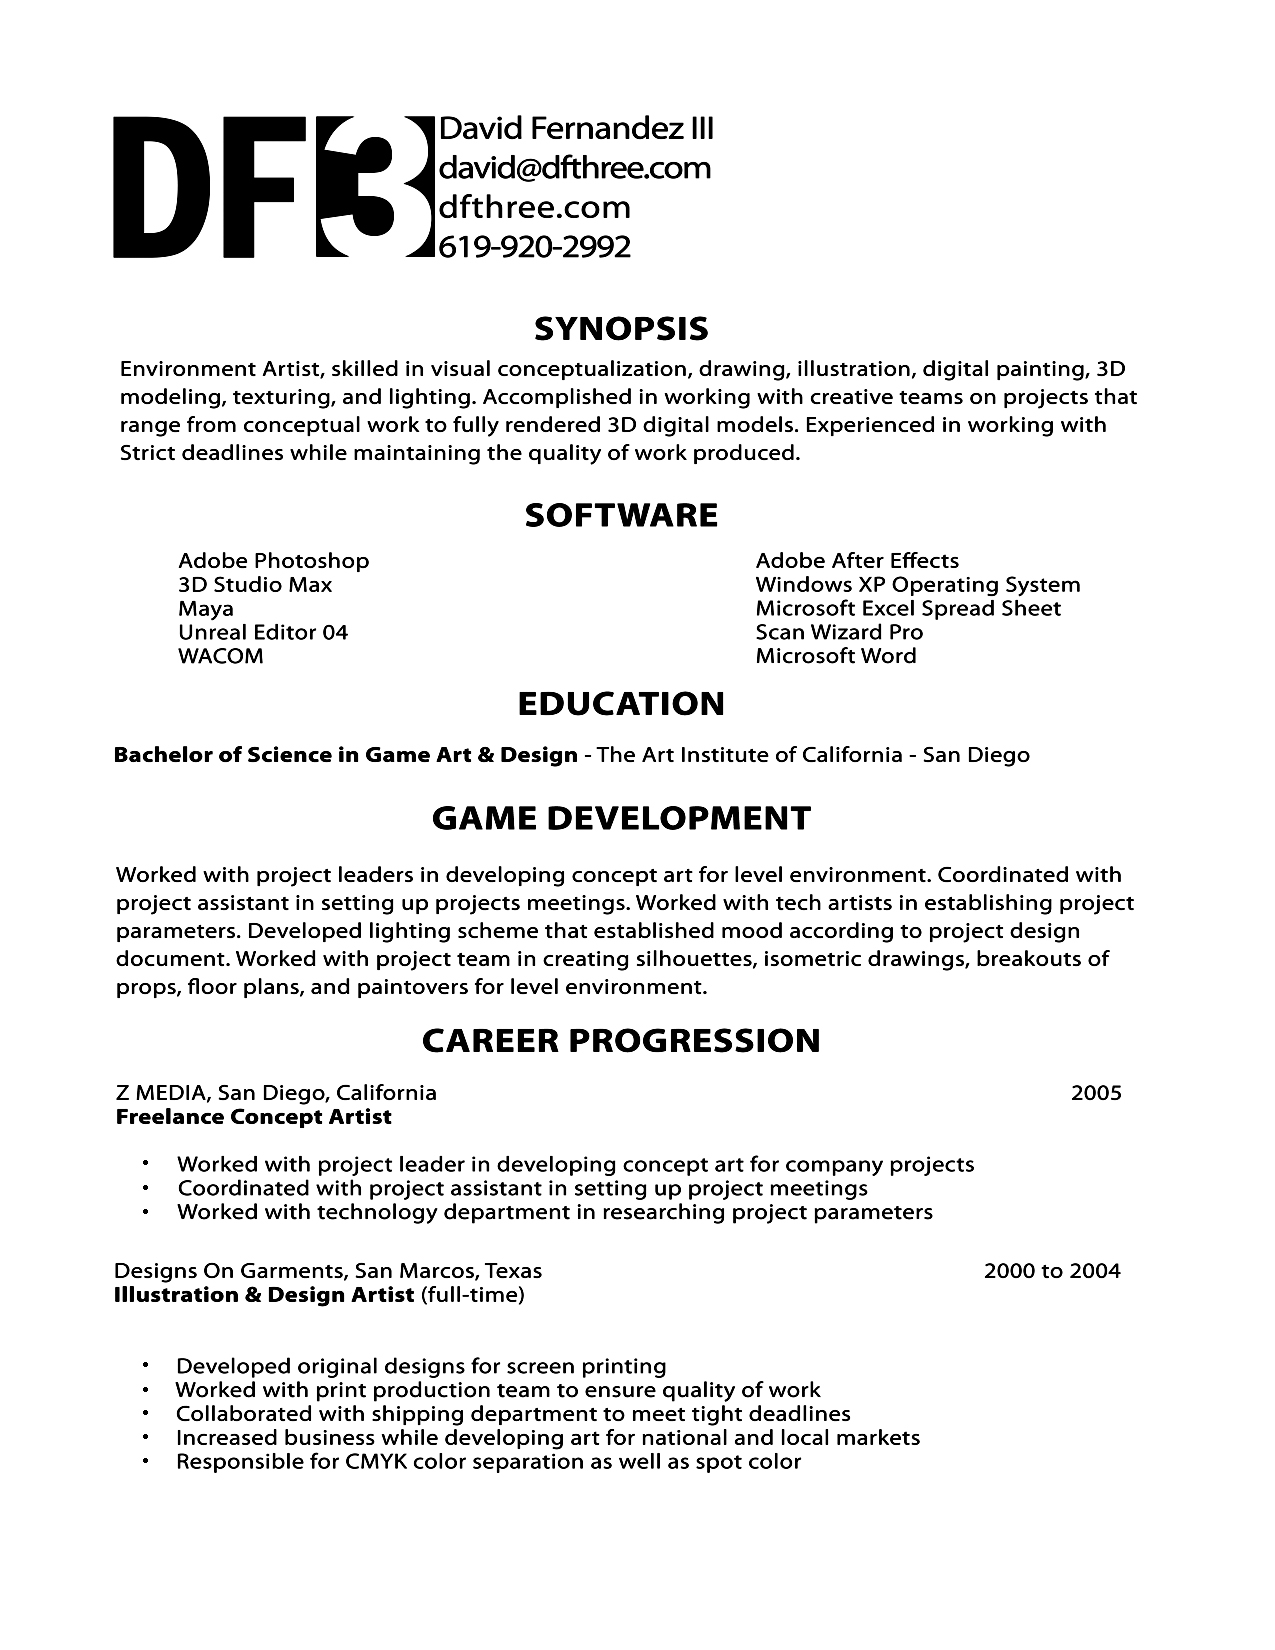 Opposenewapstandardsus  Winning Game Developer Resume Game Tester Resume Sample Game Tester  With Goodlooking Better Jobs Faster With Alluring How To Make My Resume Stand Out Also Chronological Resume Sample In Addition Sample Marketing Resume And Formal Resume As Well As Resume Personal Statement Examples Additionally Volunteer Resume Sample From Kelseymarieco With Opposenewapstandardsus  Goodlooking Game Developer Resume Game Tester Resume Sample Game Tester  With Alluring Better Jobs Faster And Winning How To Make My Resume Stand Out Also Chronological Resume Sample In Addition Sample Marketing Resume From Kelseymarieco